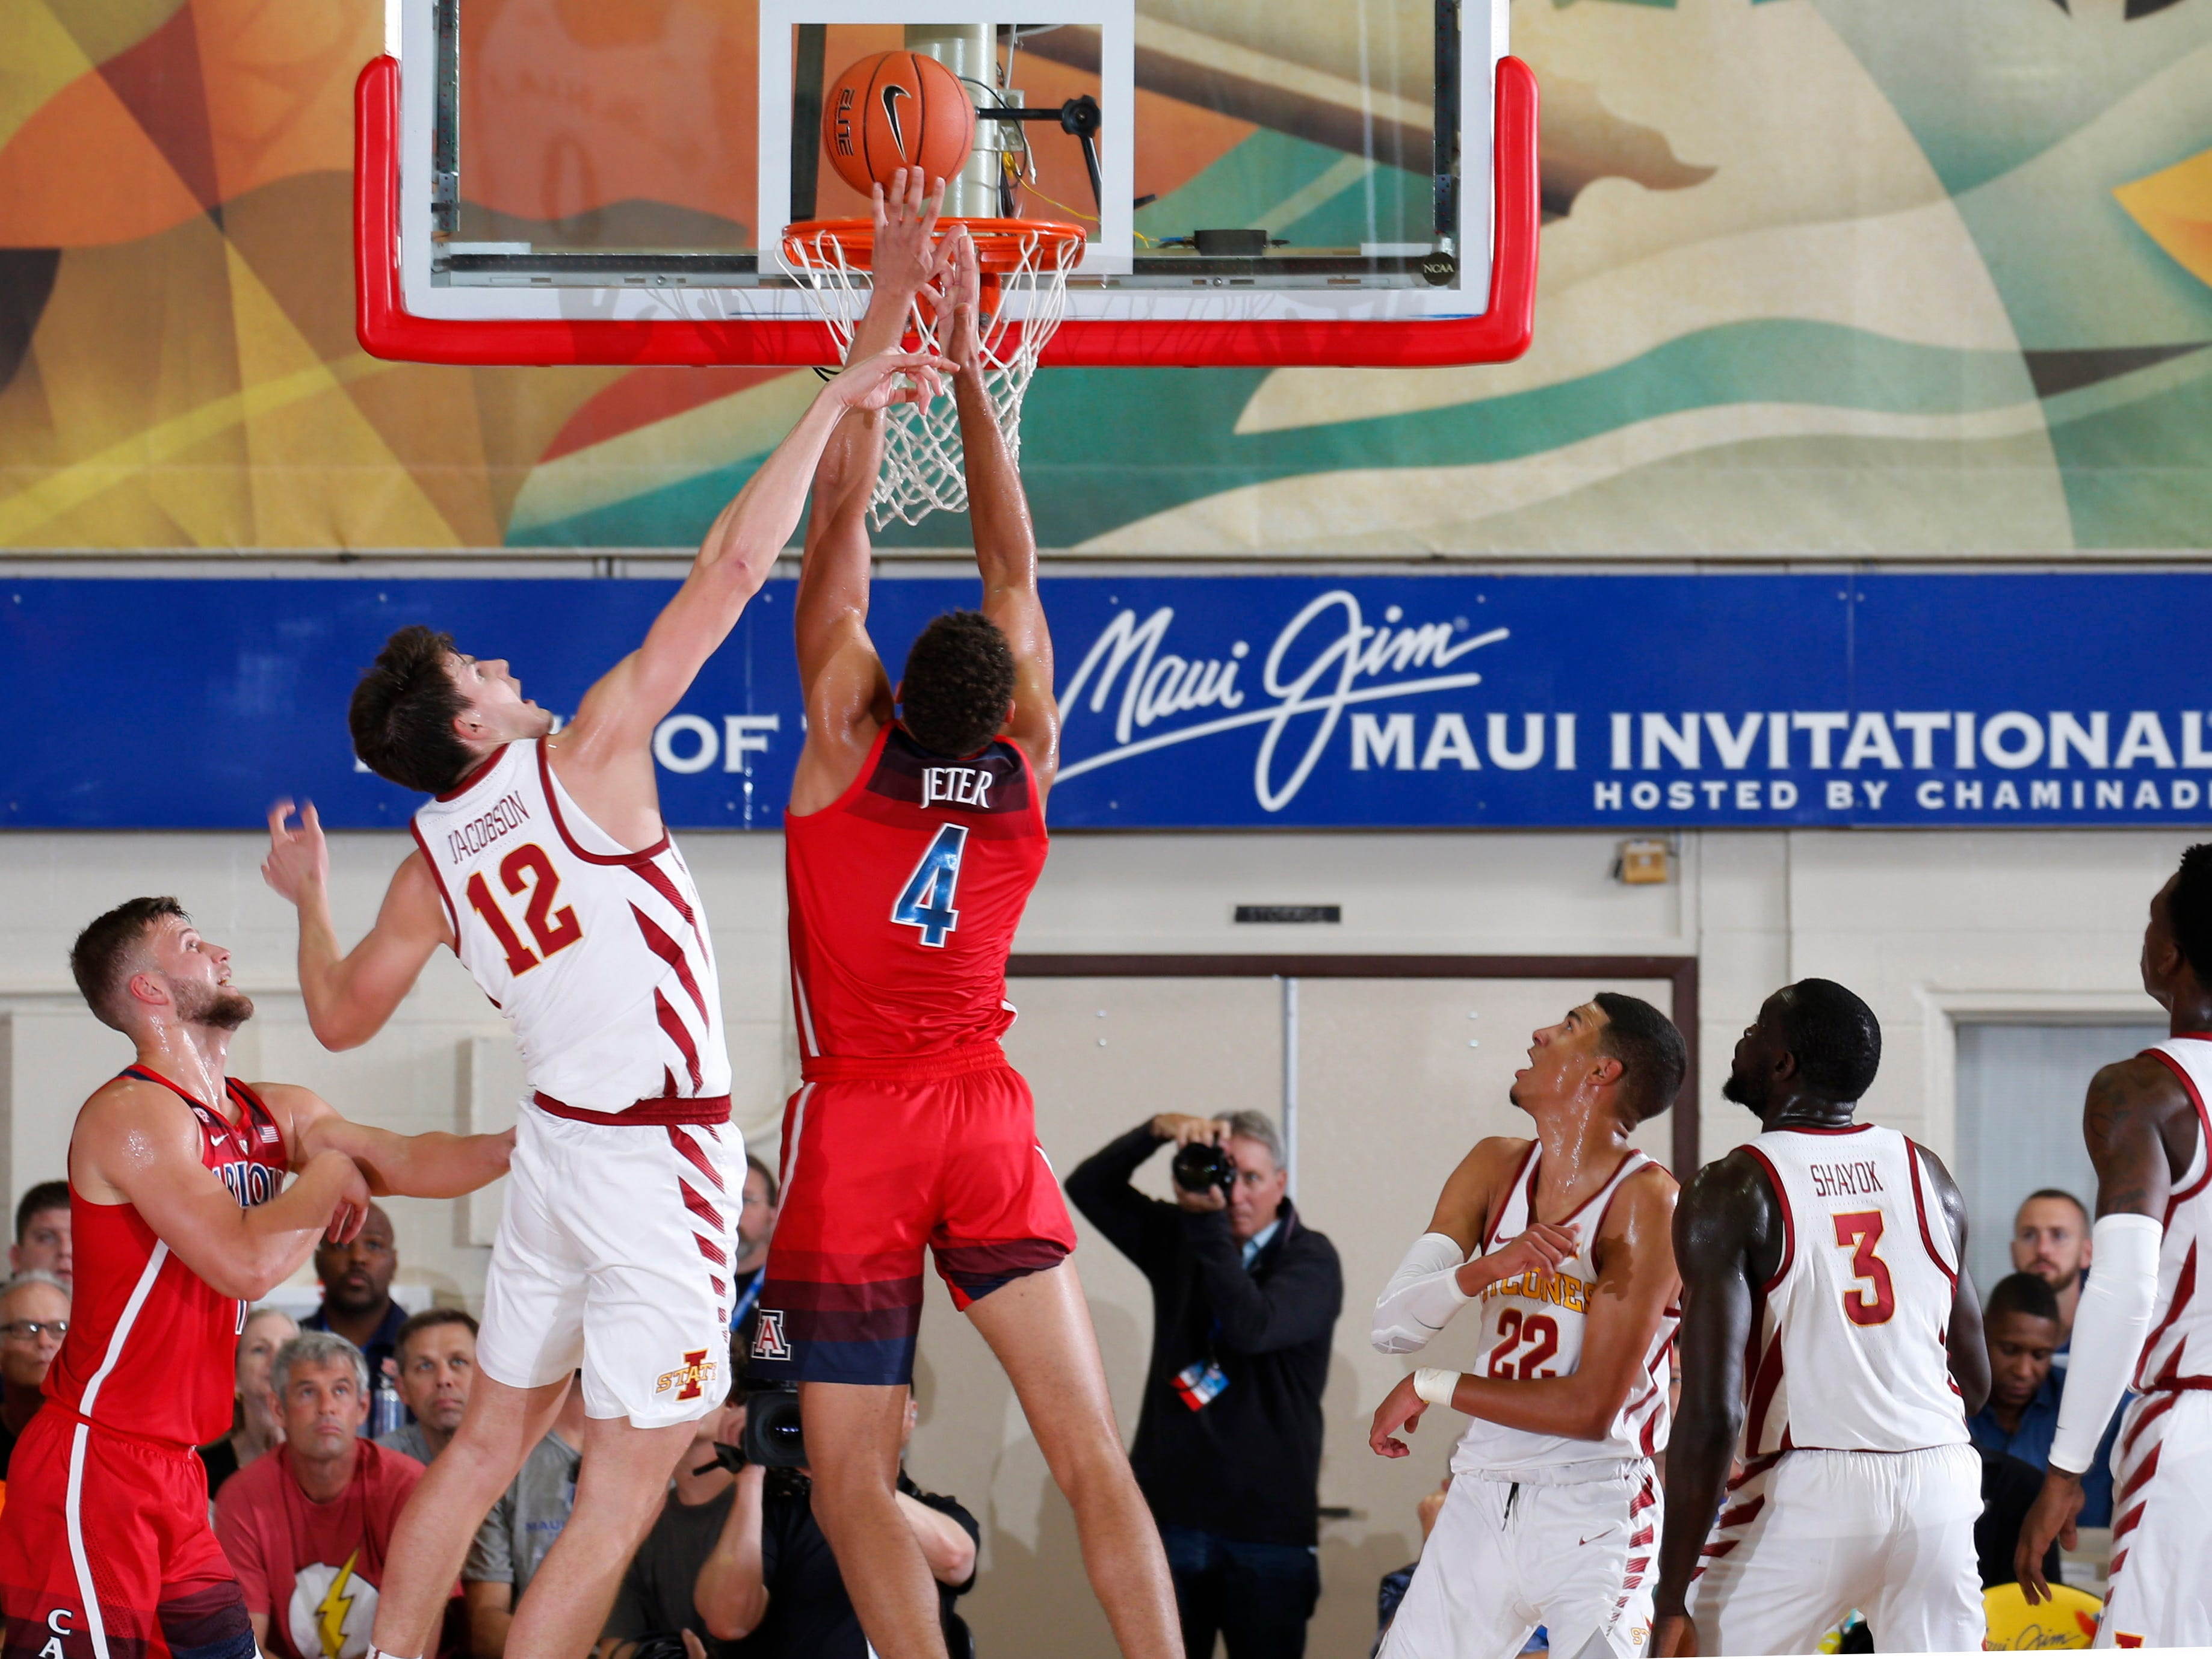 Arizona Wildcats forward Chase Jeter (4) battles for a rebound against Iowa State Cyclones forward Michael Jacobson (12) in the second half during round one of the Maui Jim Maui Invitational at Lahaina Civic Center.